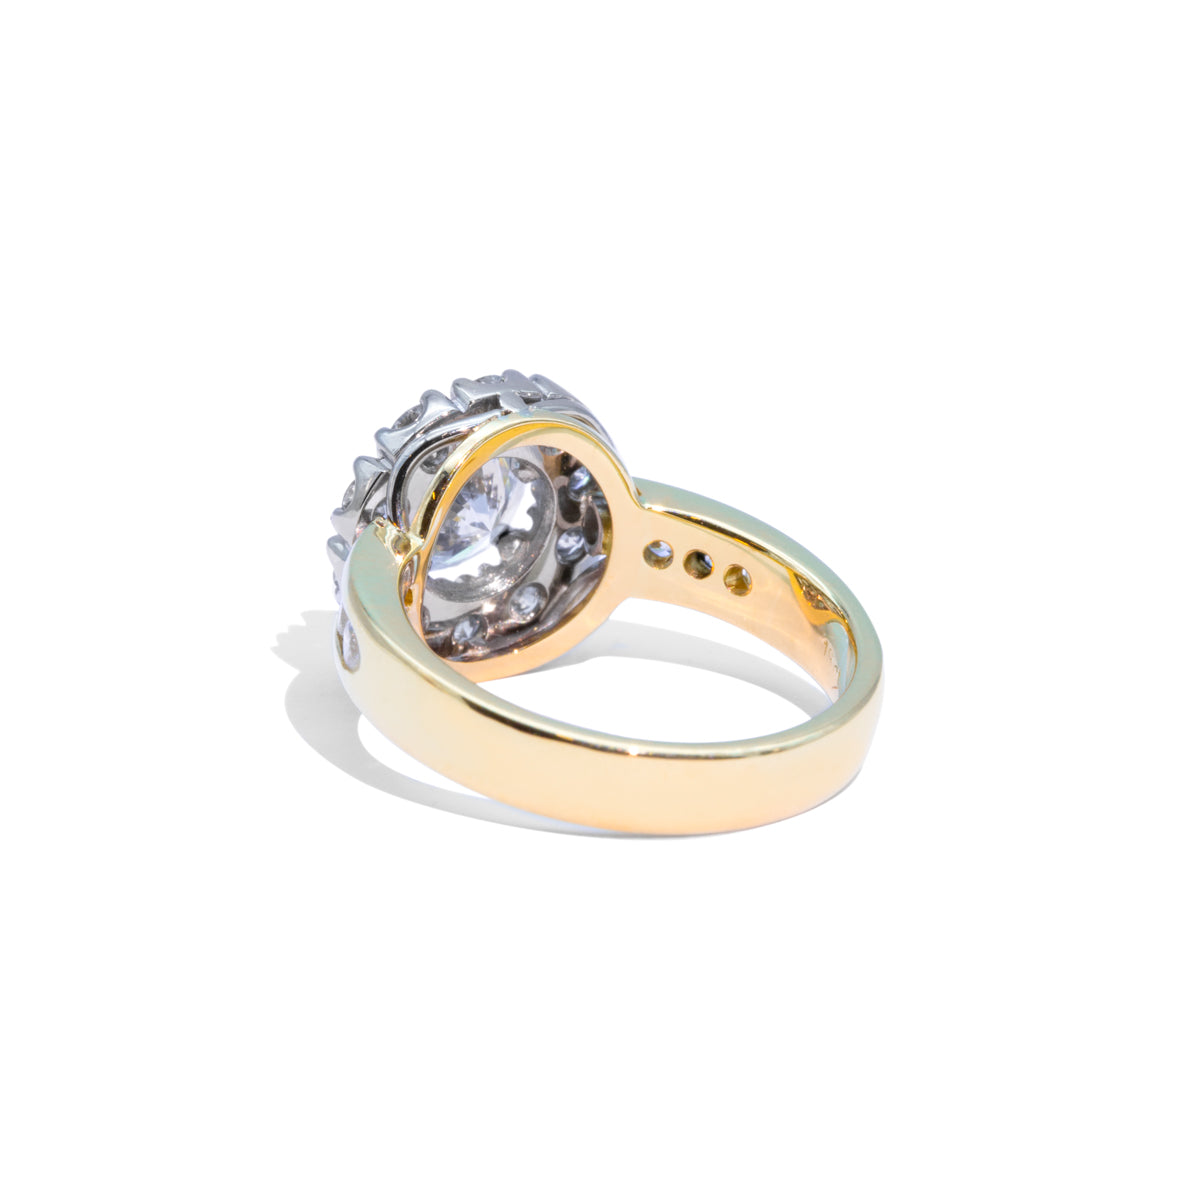 The Esther Vintage Diamond Ring